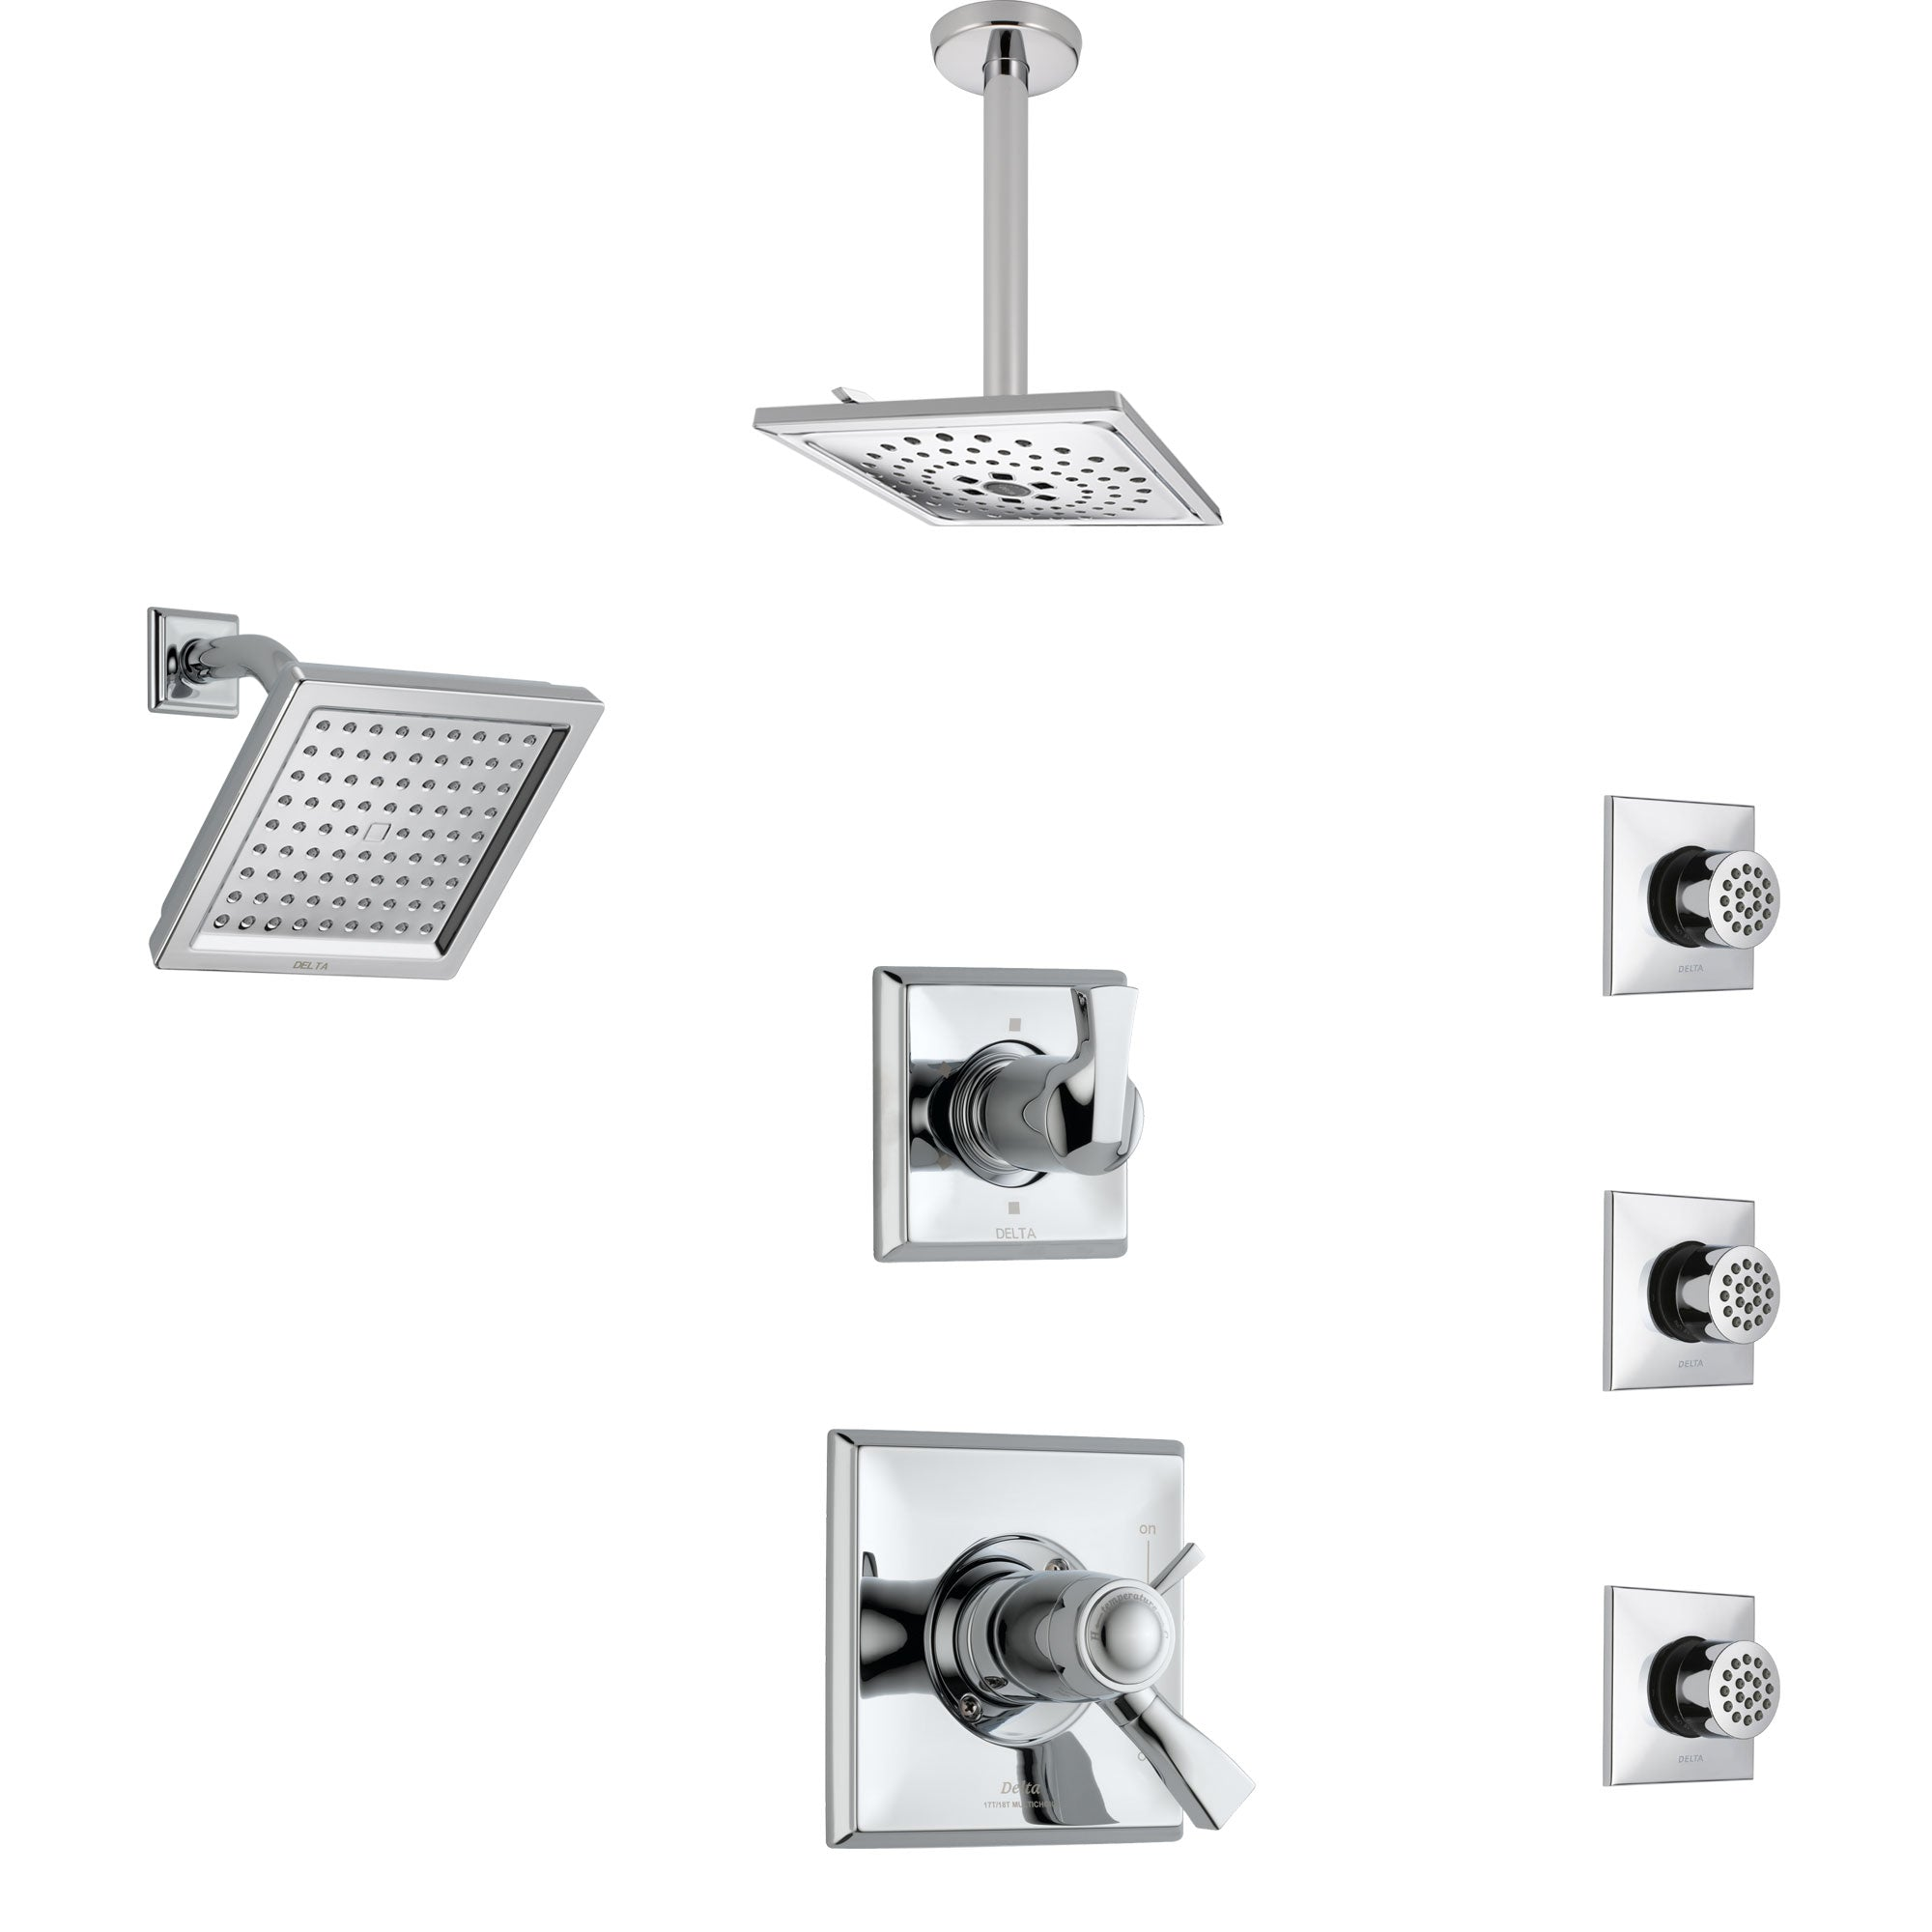 Delta Dryden Chrome Shower System with Dual Thermostatic Control, Diverter, Showerhead, Ceiling Mount Showerhead, and 3 Body Sprays SS17T25145